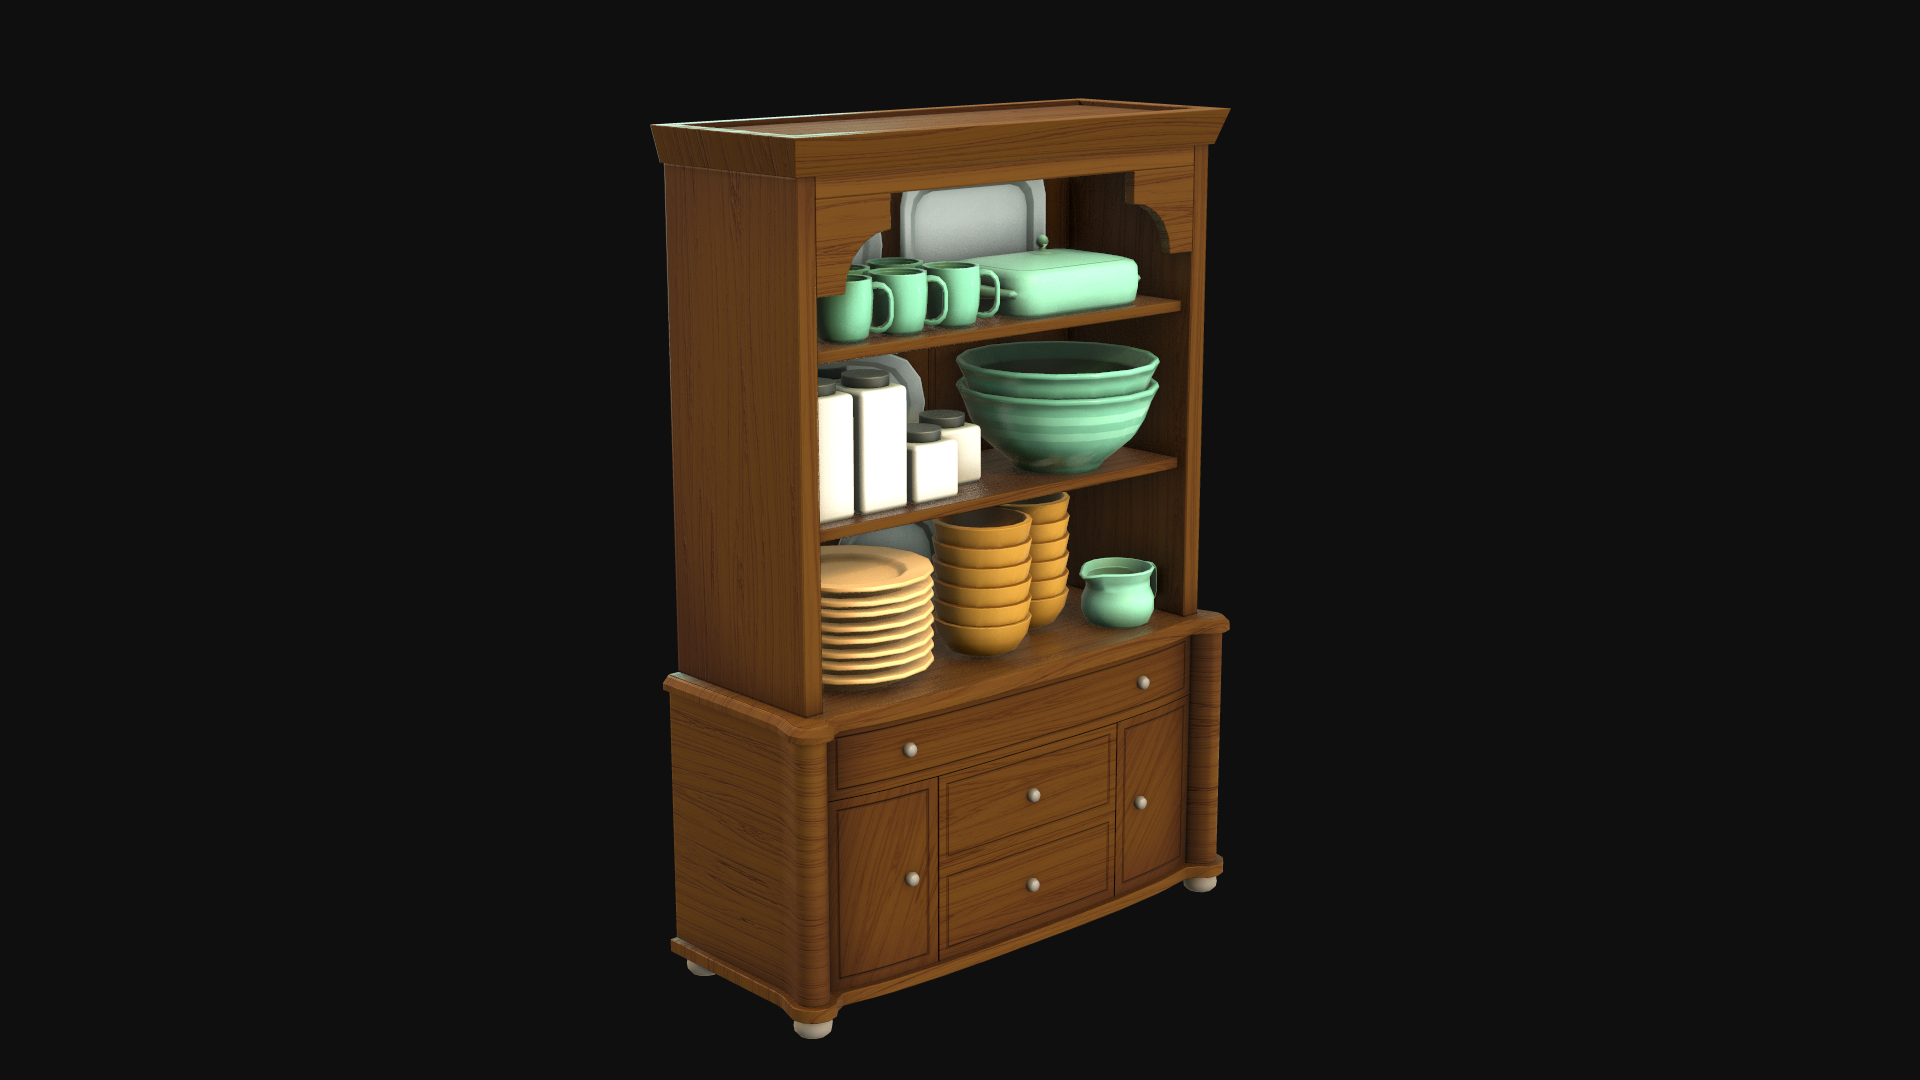 Cupboard & Tableware - Final Fantasy IX scene fan art asset